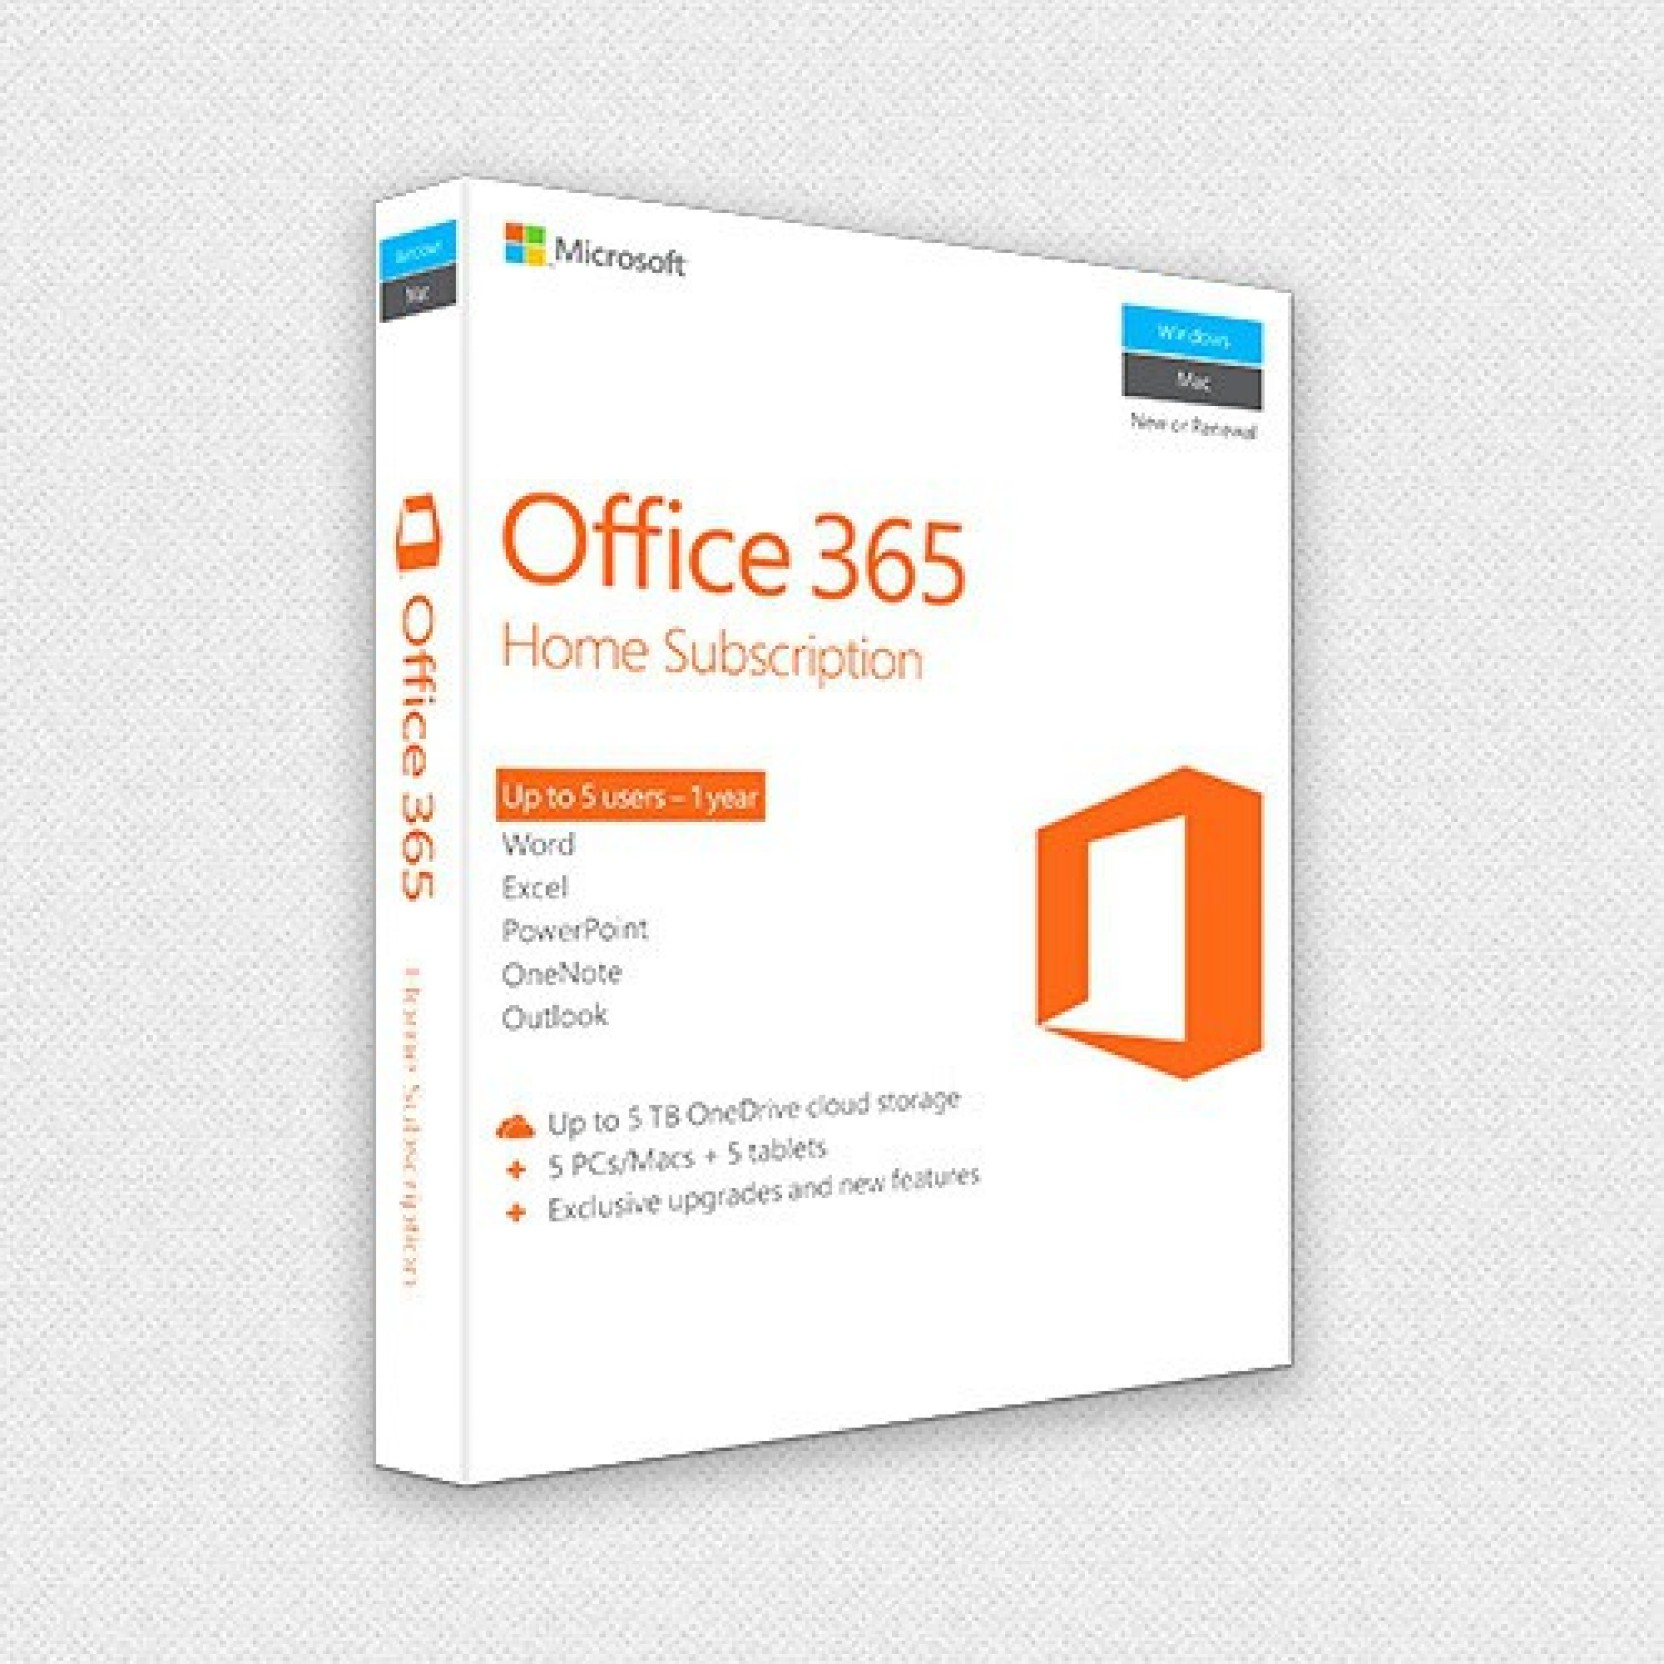 microsoft office 365 home premium 5 licenses pc mac tablet product key card no dvd. Black Bedroom Furniture Sets. Home Design Ideas